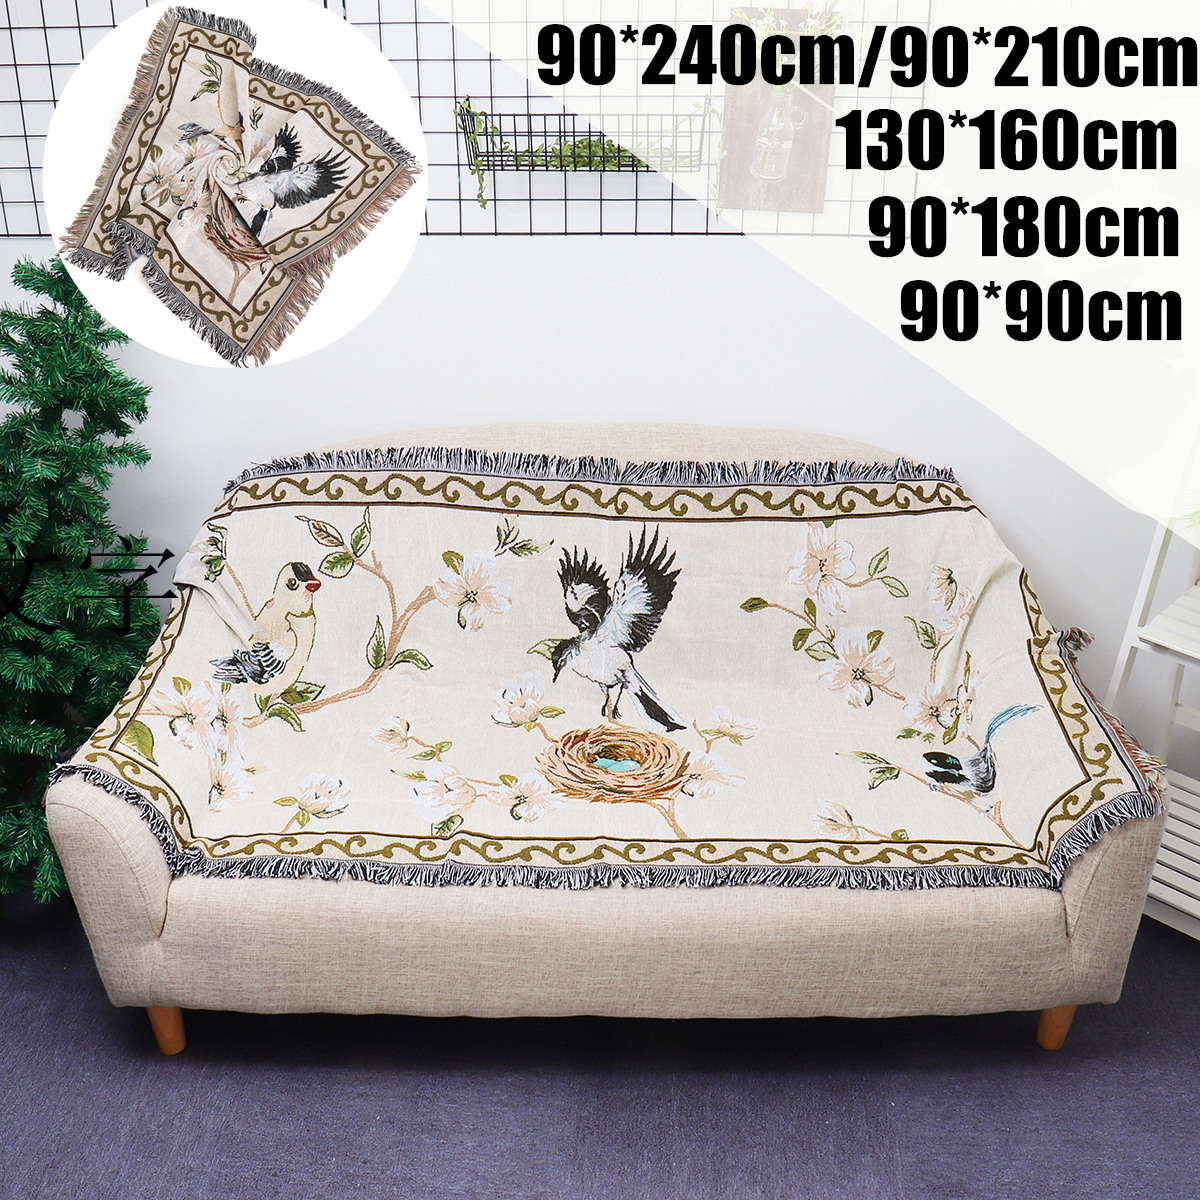 Lounge Throw Details About Bohemian Bird Boho Sofa Throw Rug Couch Lounge Sofa Chair Blanket Bed Sheet Home